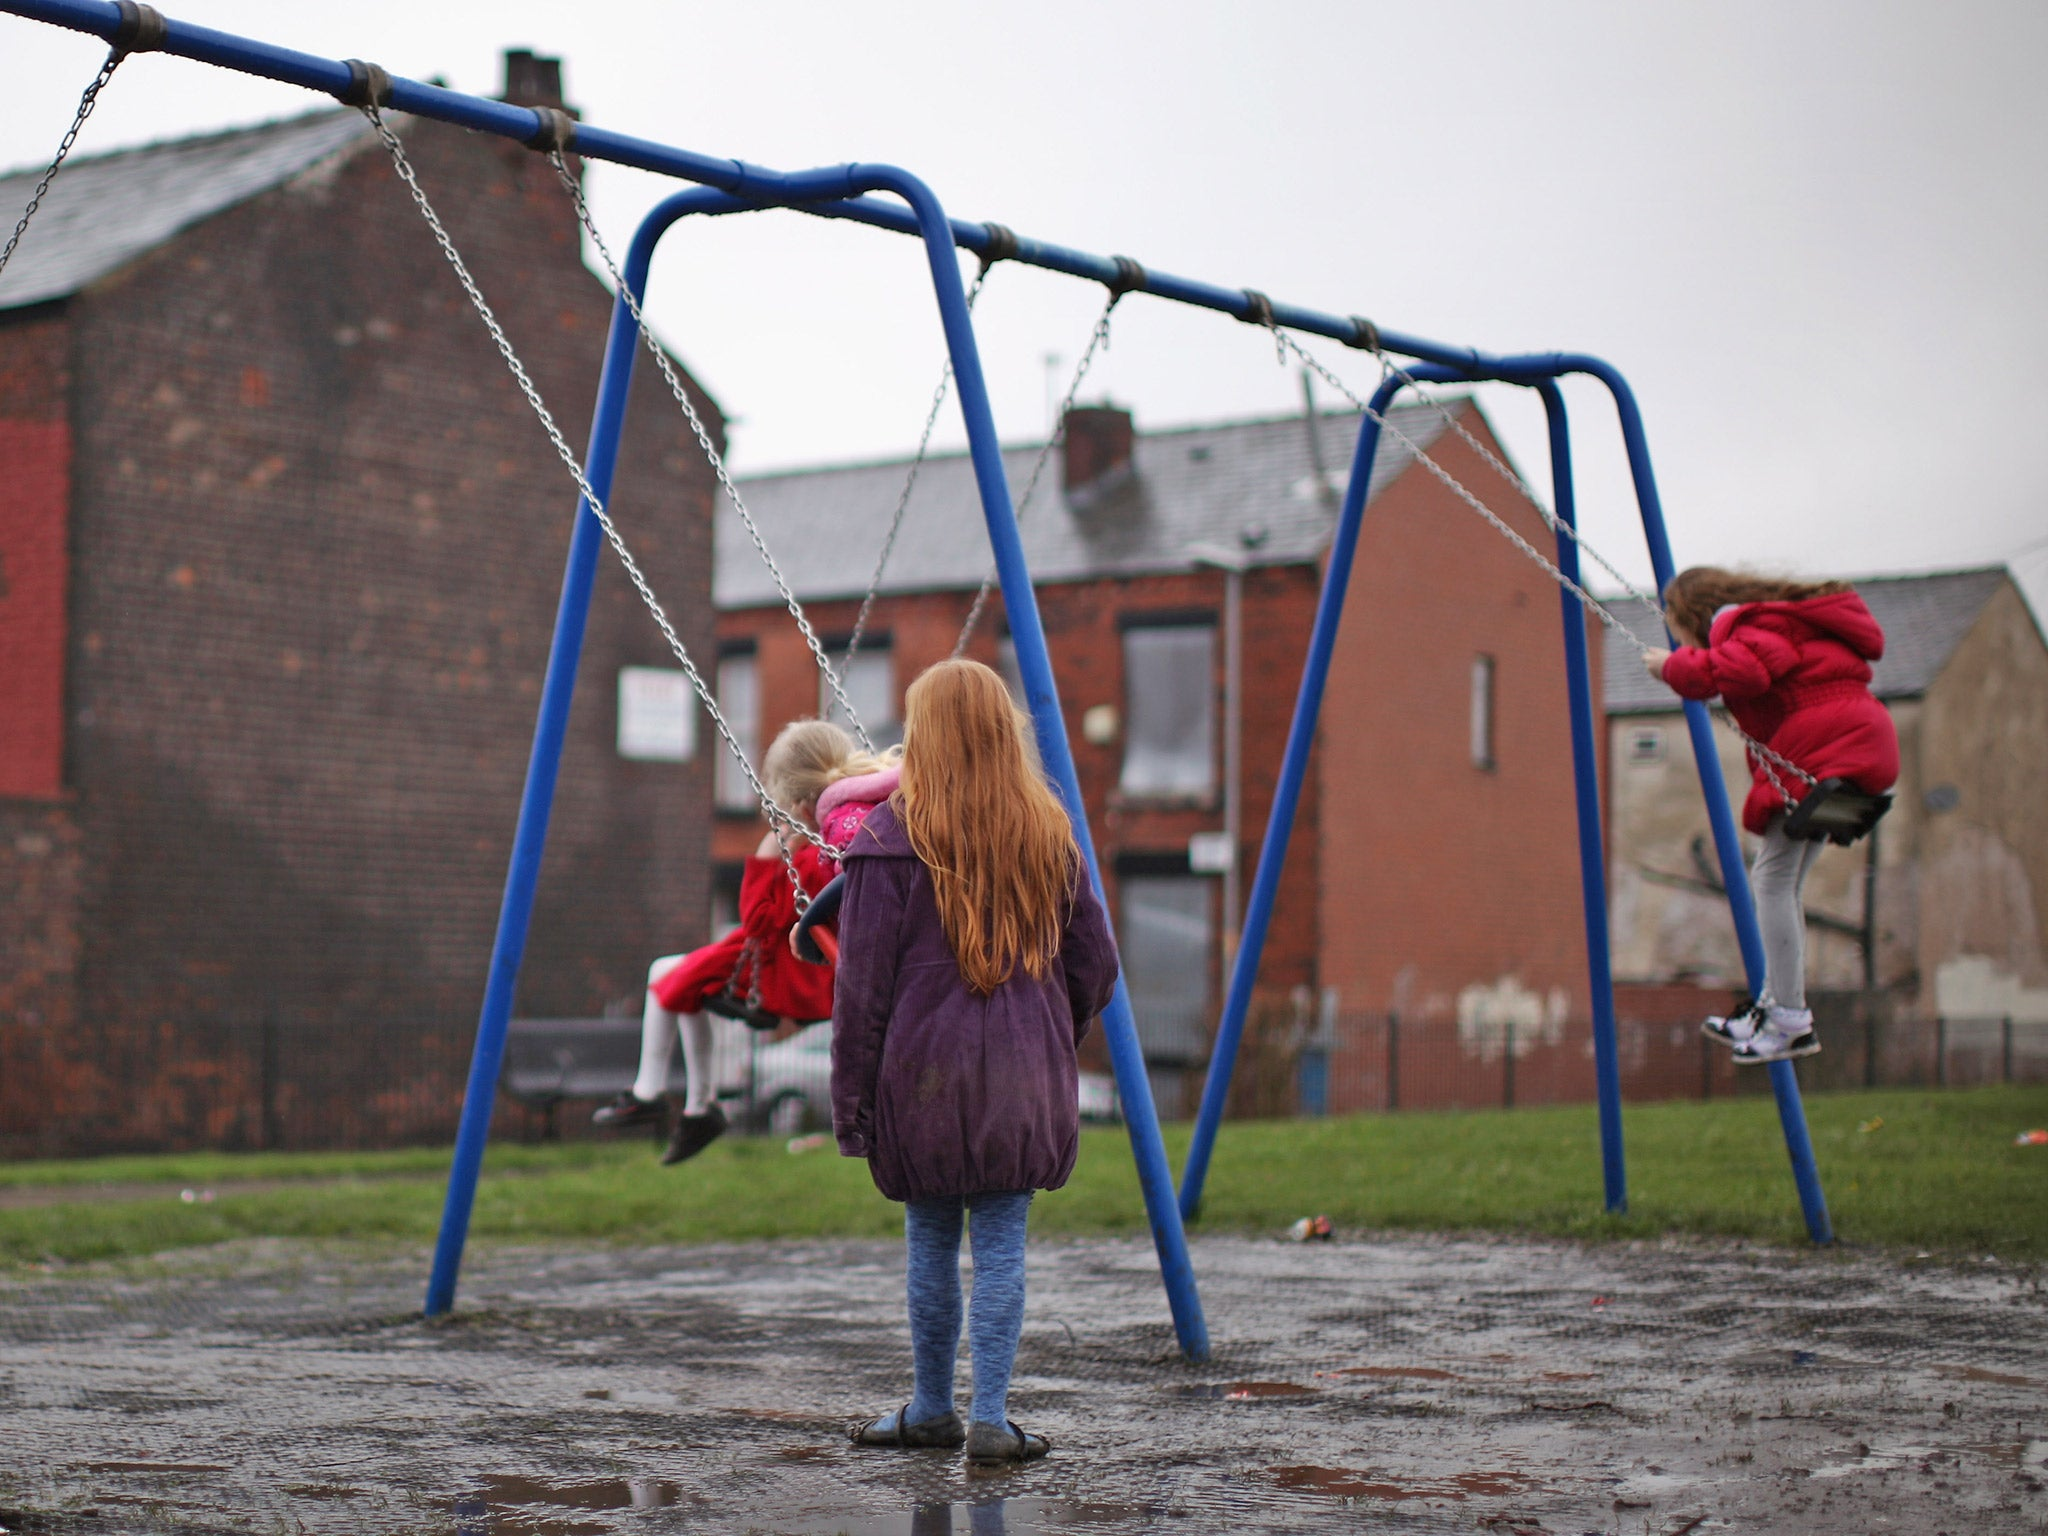 Half a million more children are living in poverty than in 2010